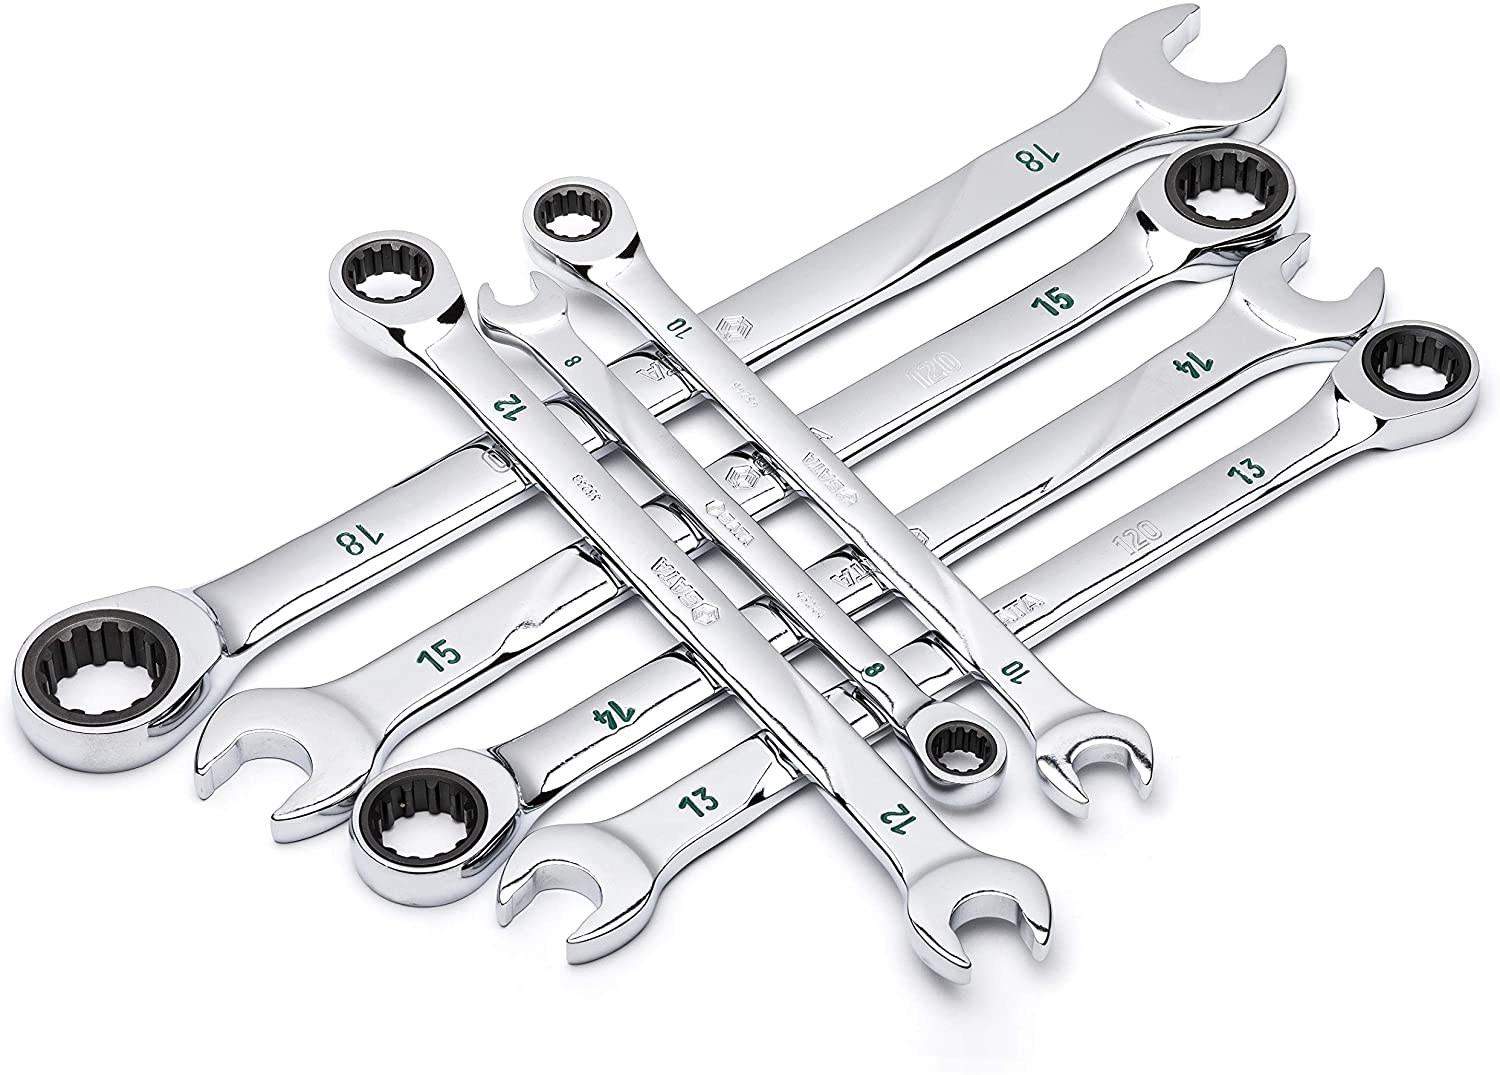 SATA 7-Piece SAE 120P Professional Combination Ratcheting Wrench Set with Universal Spline Drive and 120 Opening Positions, 5/16 to 3/4-Inch - ST08044U